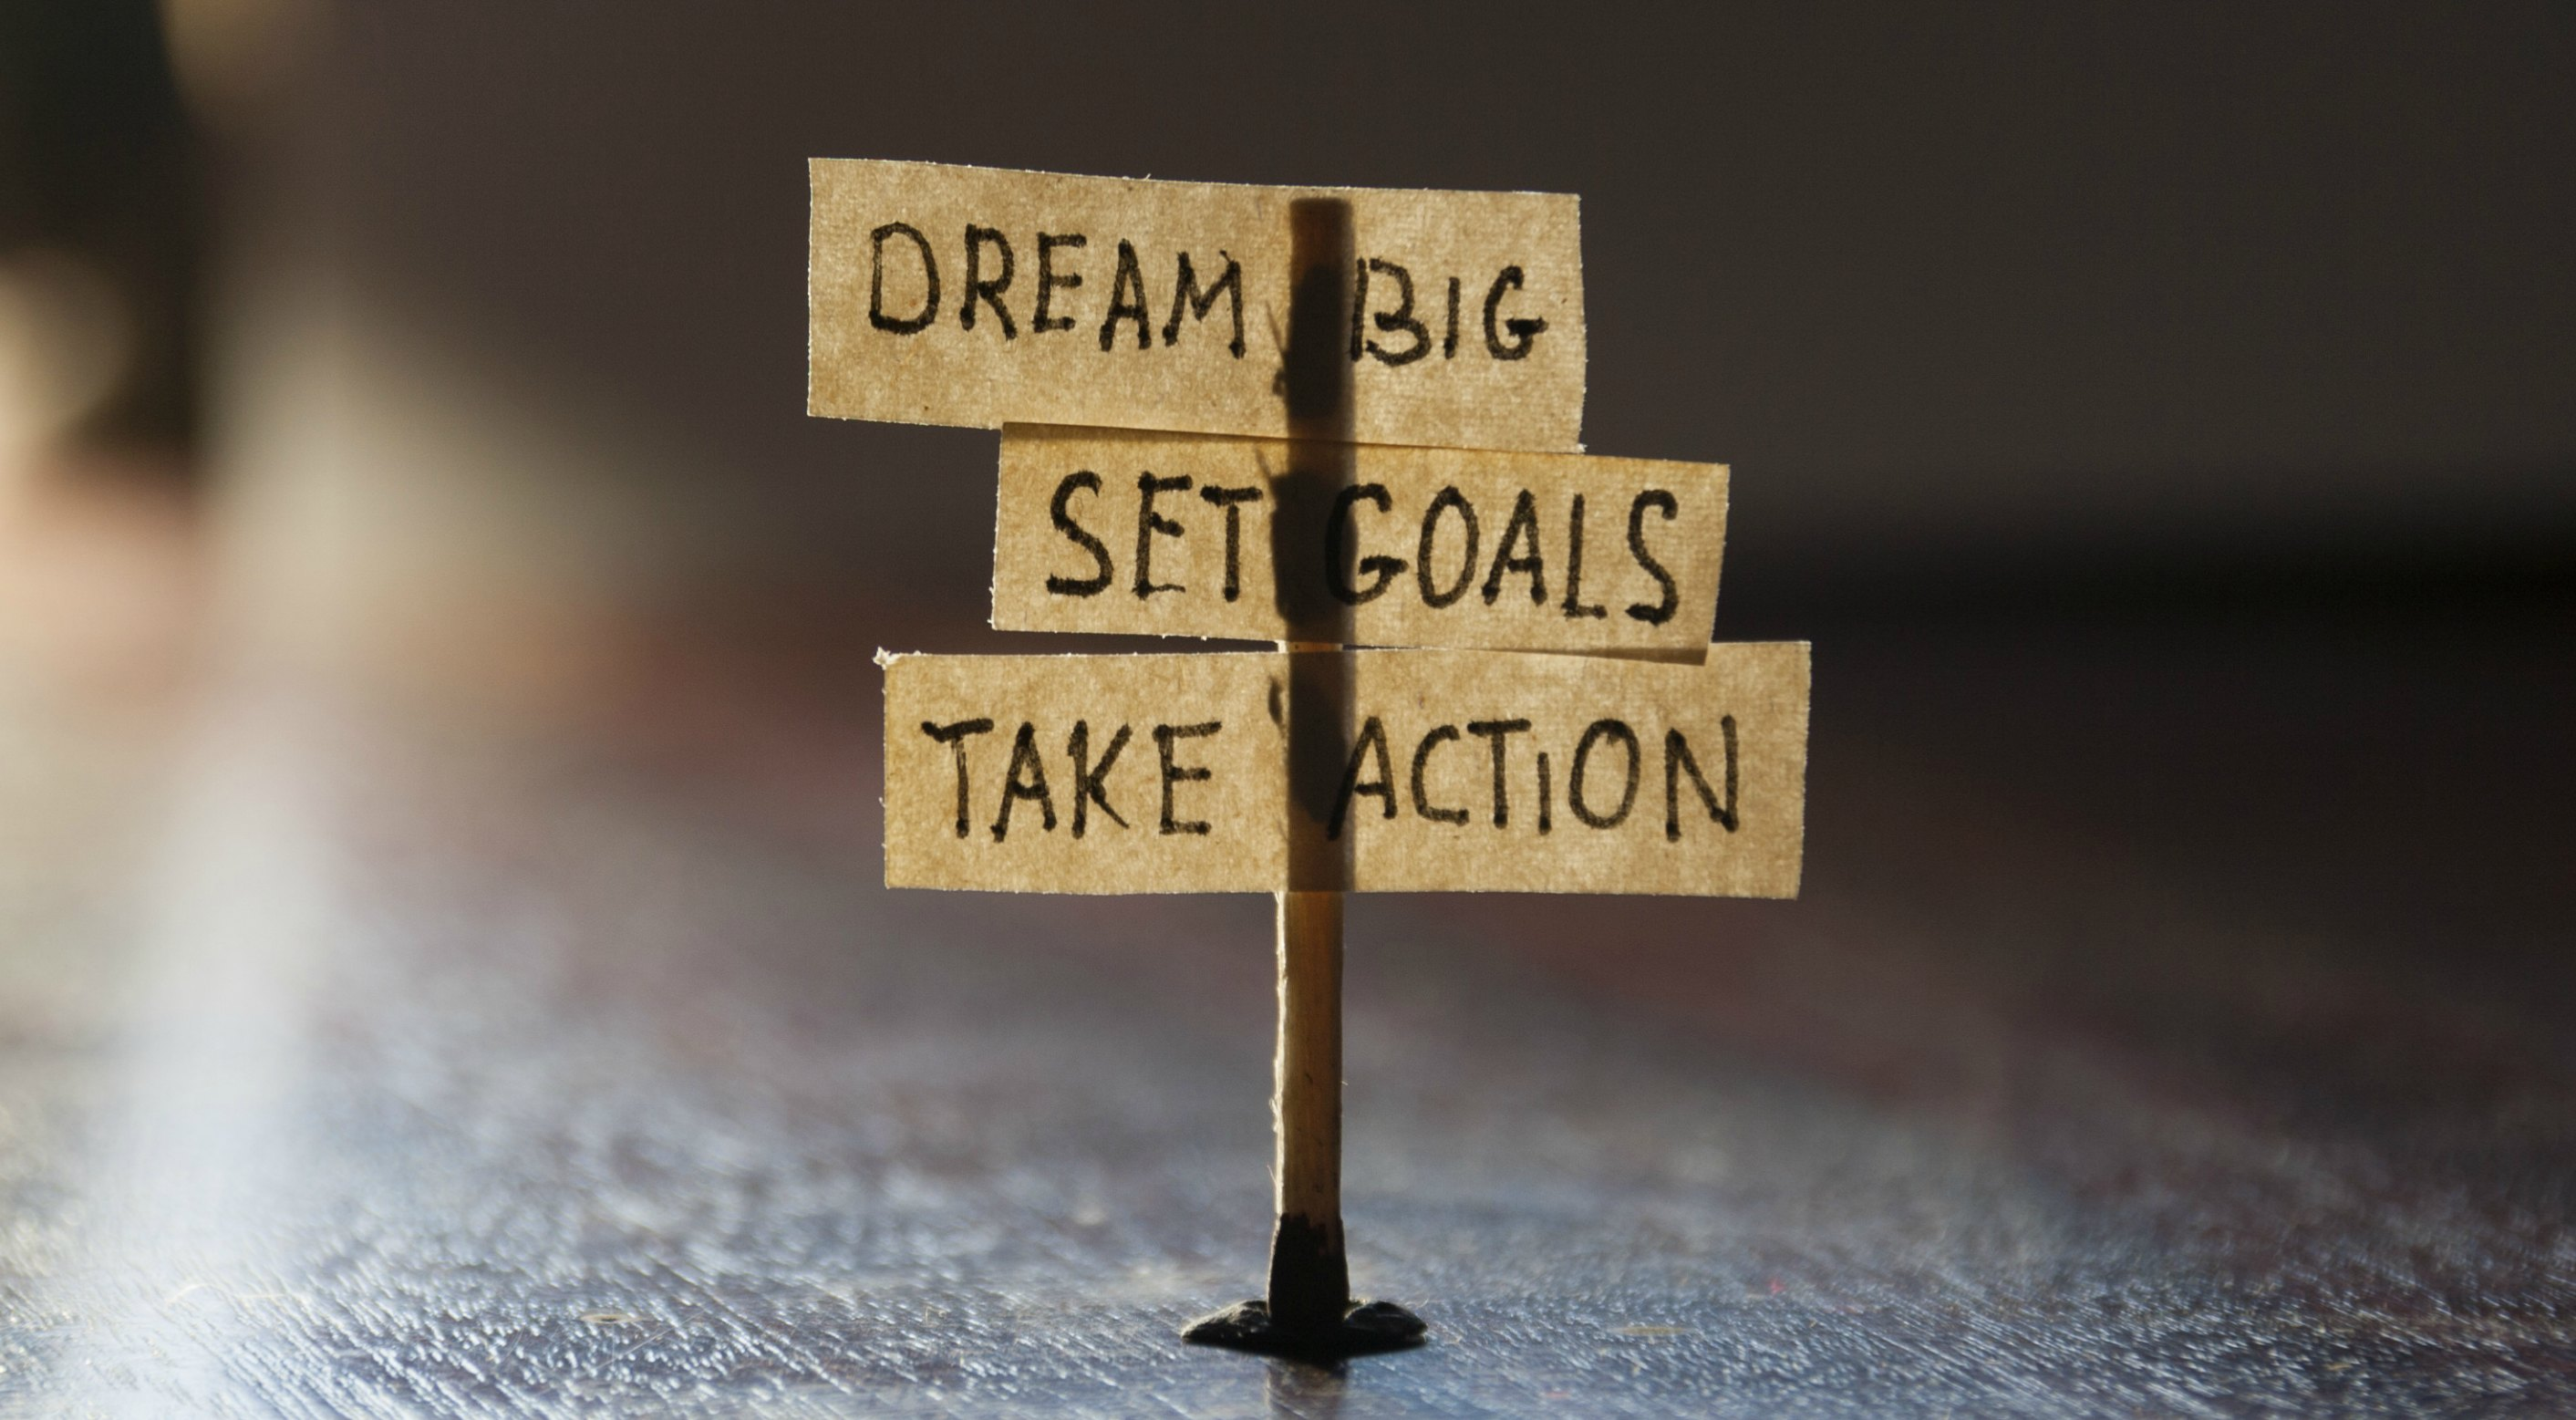 Dream Big, Set Goals, Take Action, concept, tags on the table.